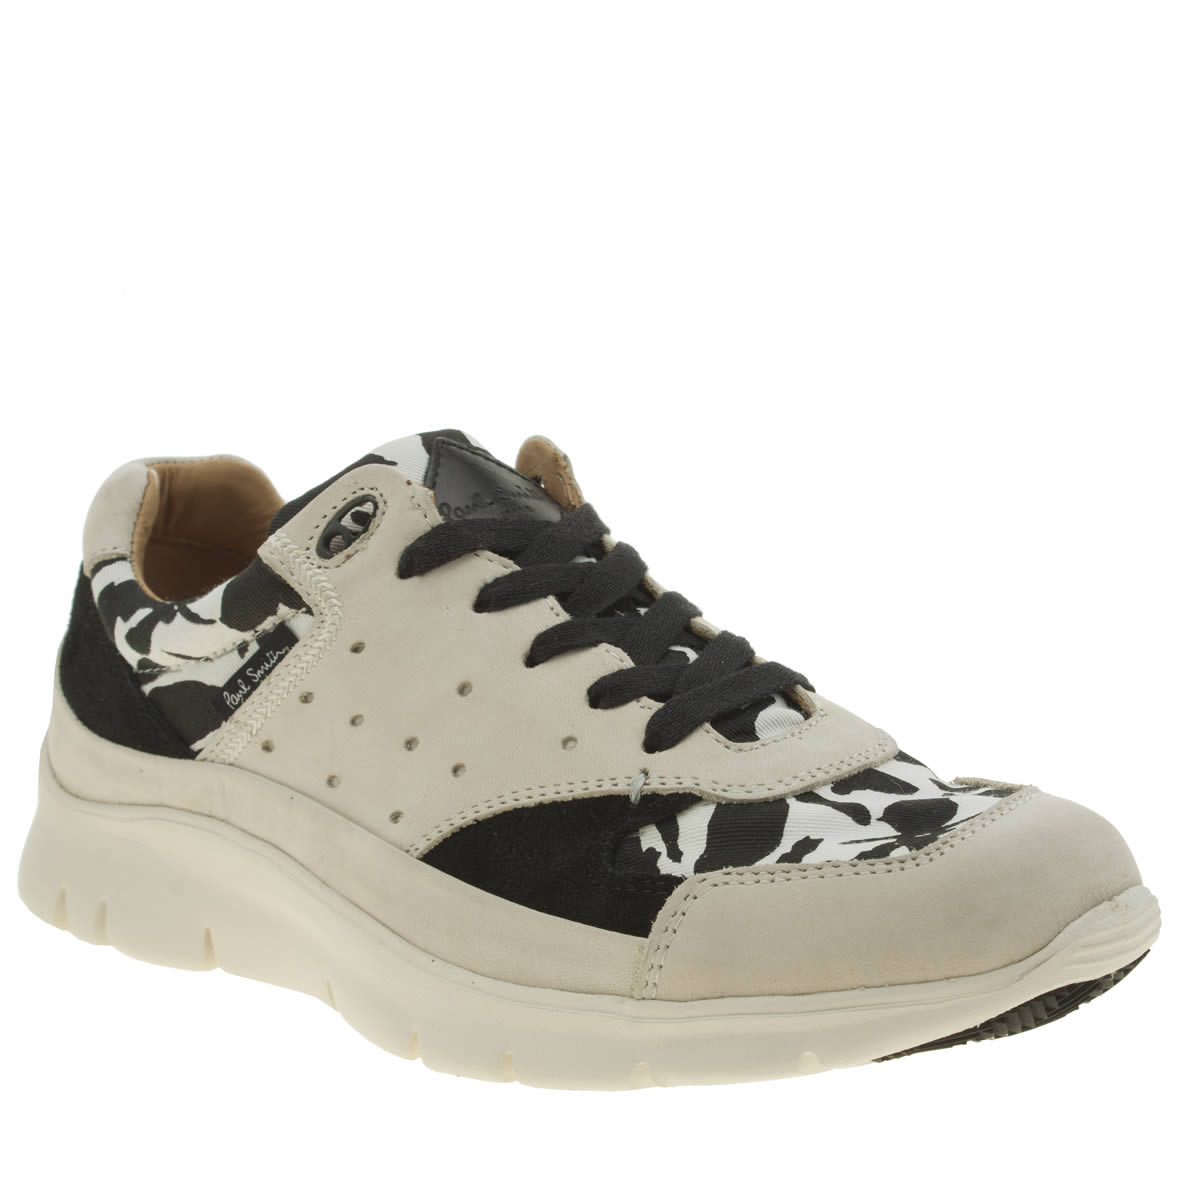 Paul Smith Shoes Paul Smith Shoes White & Black October Mens Trainers